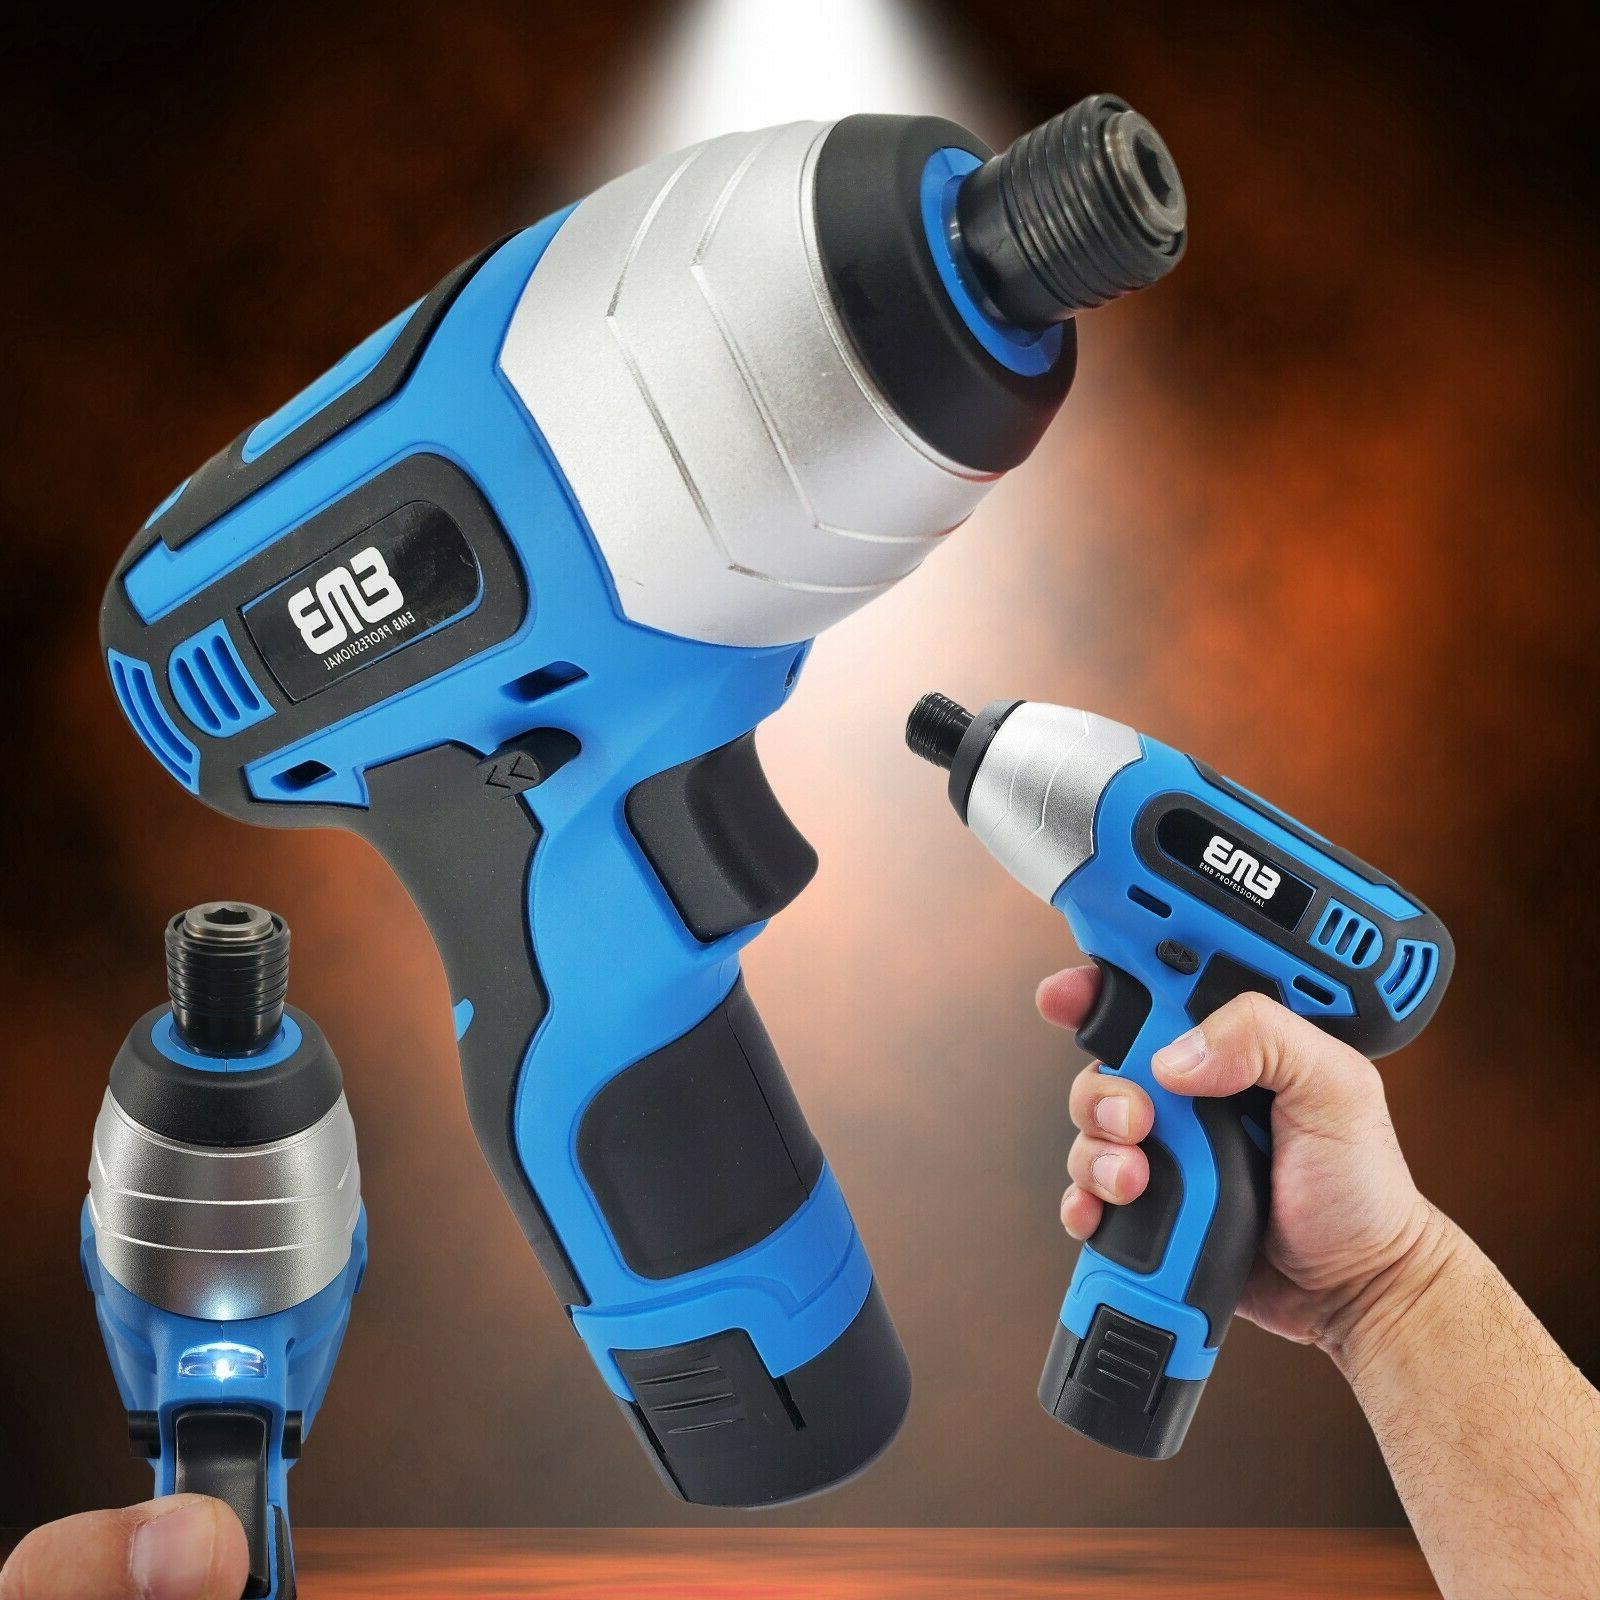 12v max brushed powerful cordless impact screwdriver